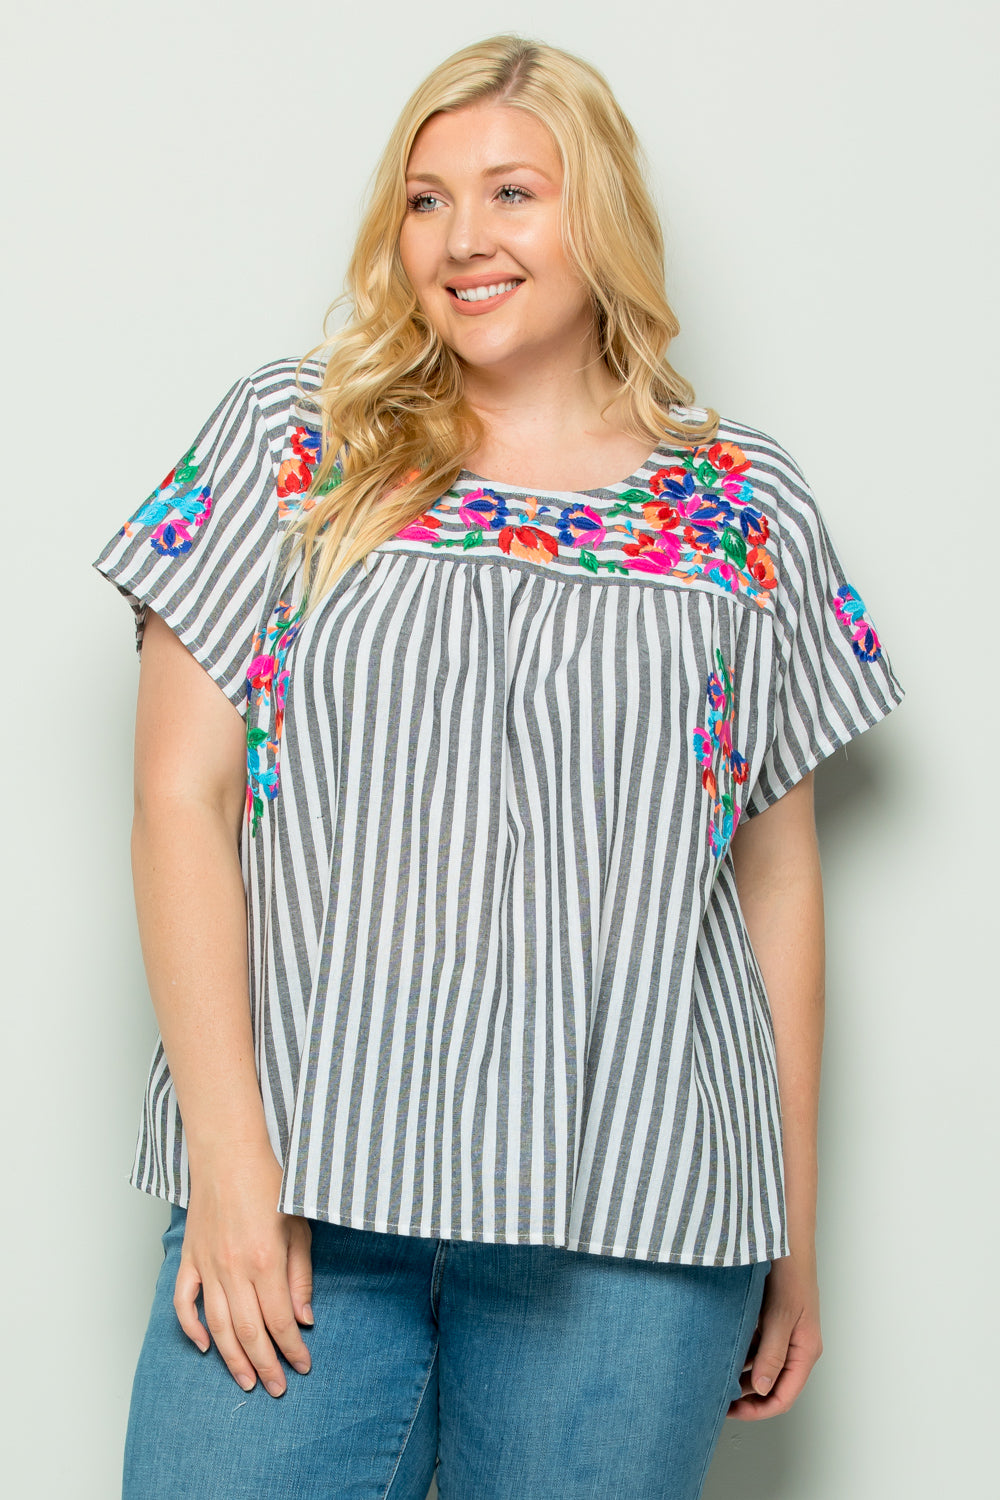 WT2746 Color Embroidery Stripe Top